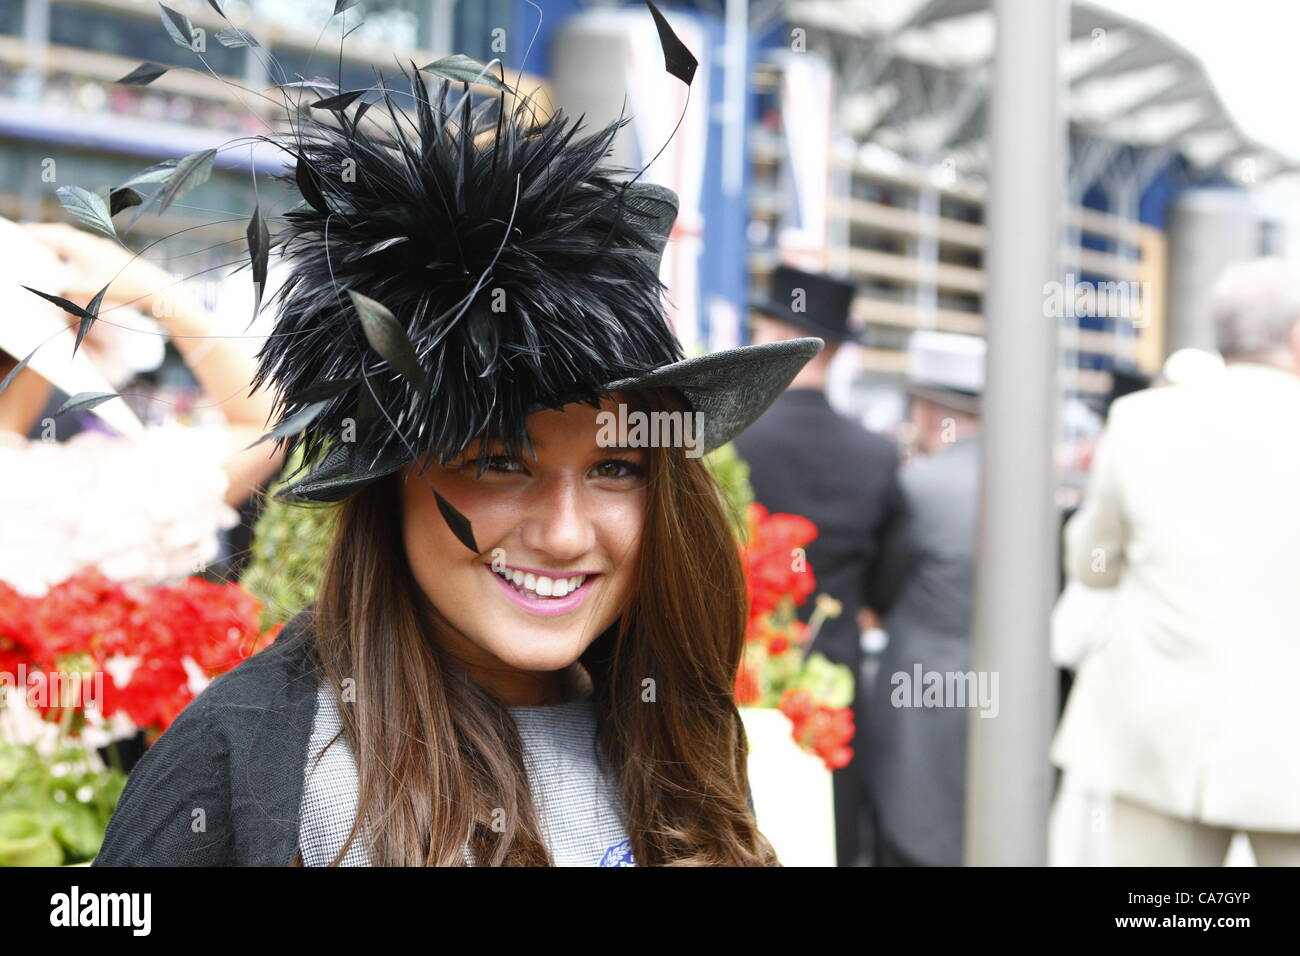 22.06.12 Ascot, Windsor, ENGLAND: Racegoes coping with wind before the fourth day at Ascot during Royal Ascot Festival - Stock Image